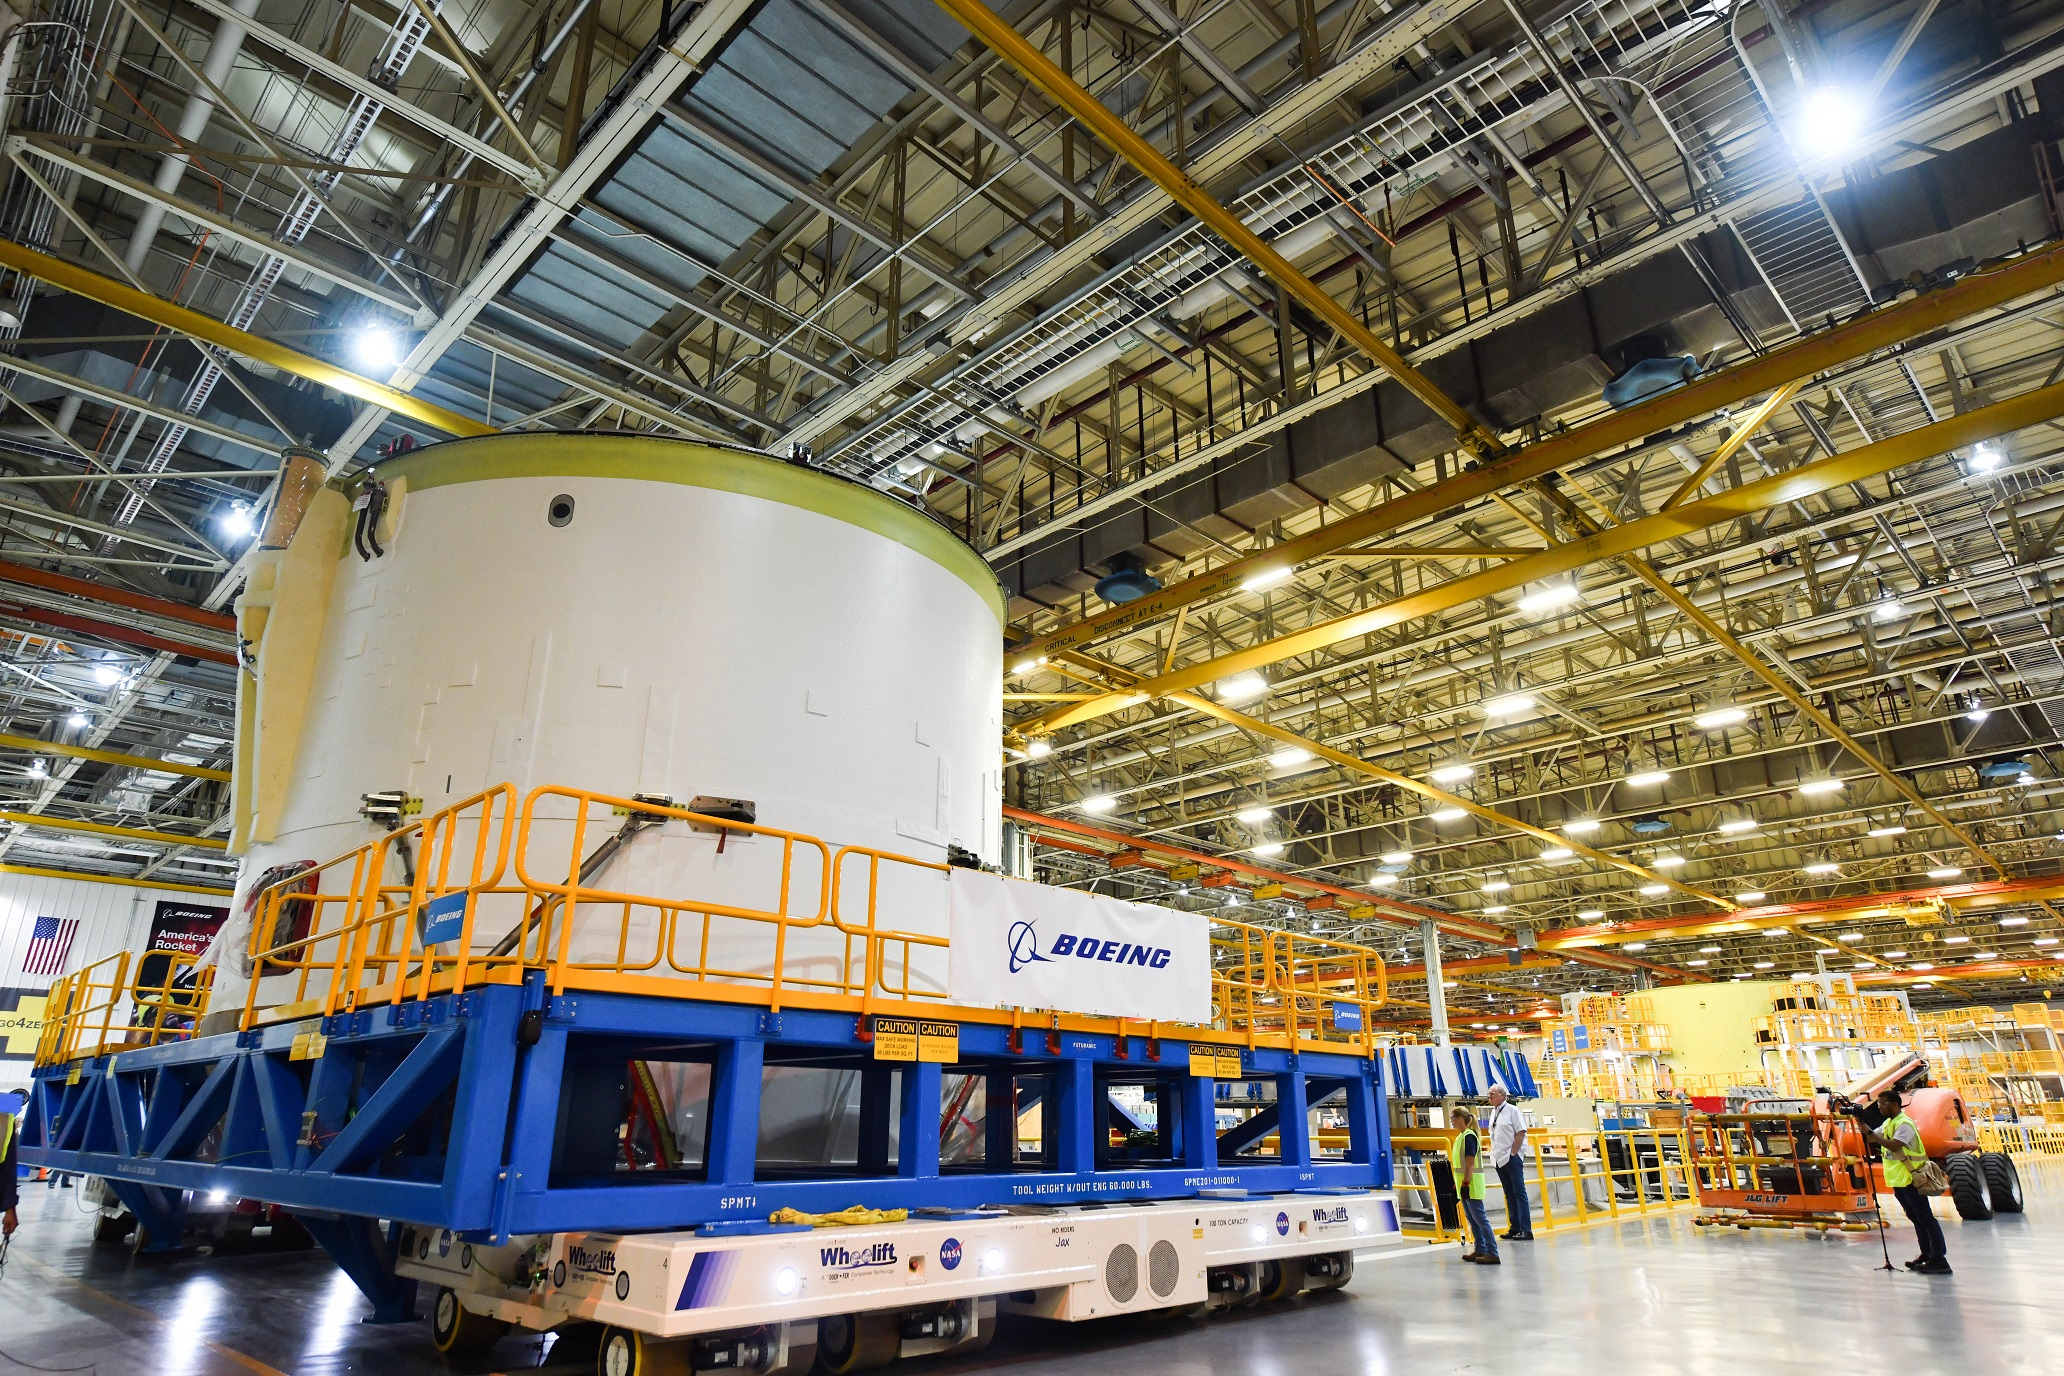 Boeing reorganizing plans as it builds second NASA SLS Core ... on truck tool box manufacturers, body harness manufacturers, safety harness manufacturers, glass manufacturers, trailer manufacturers,